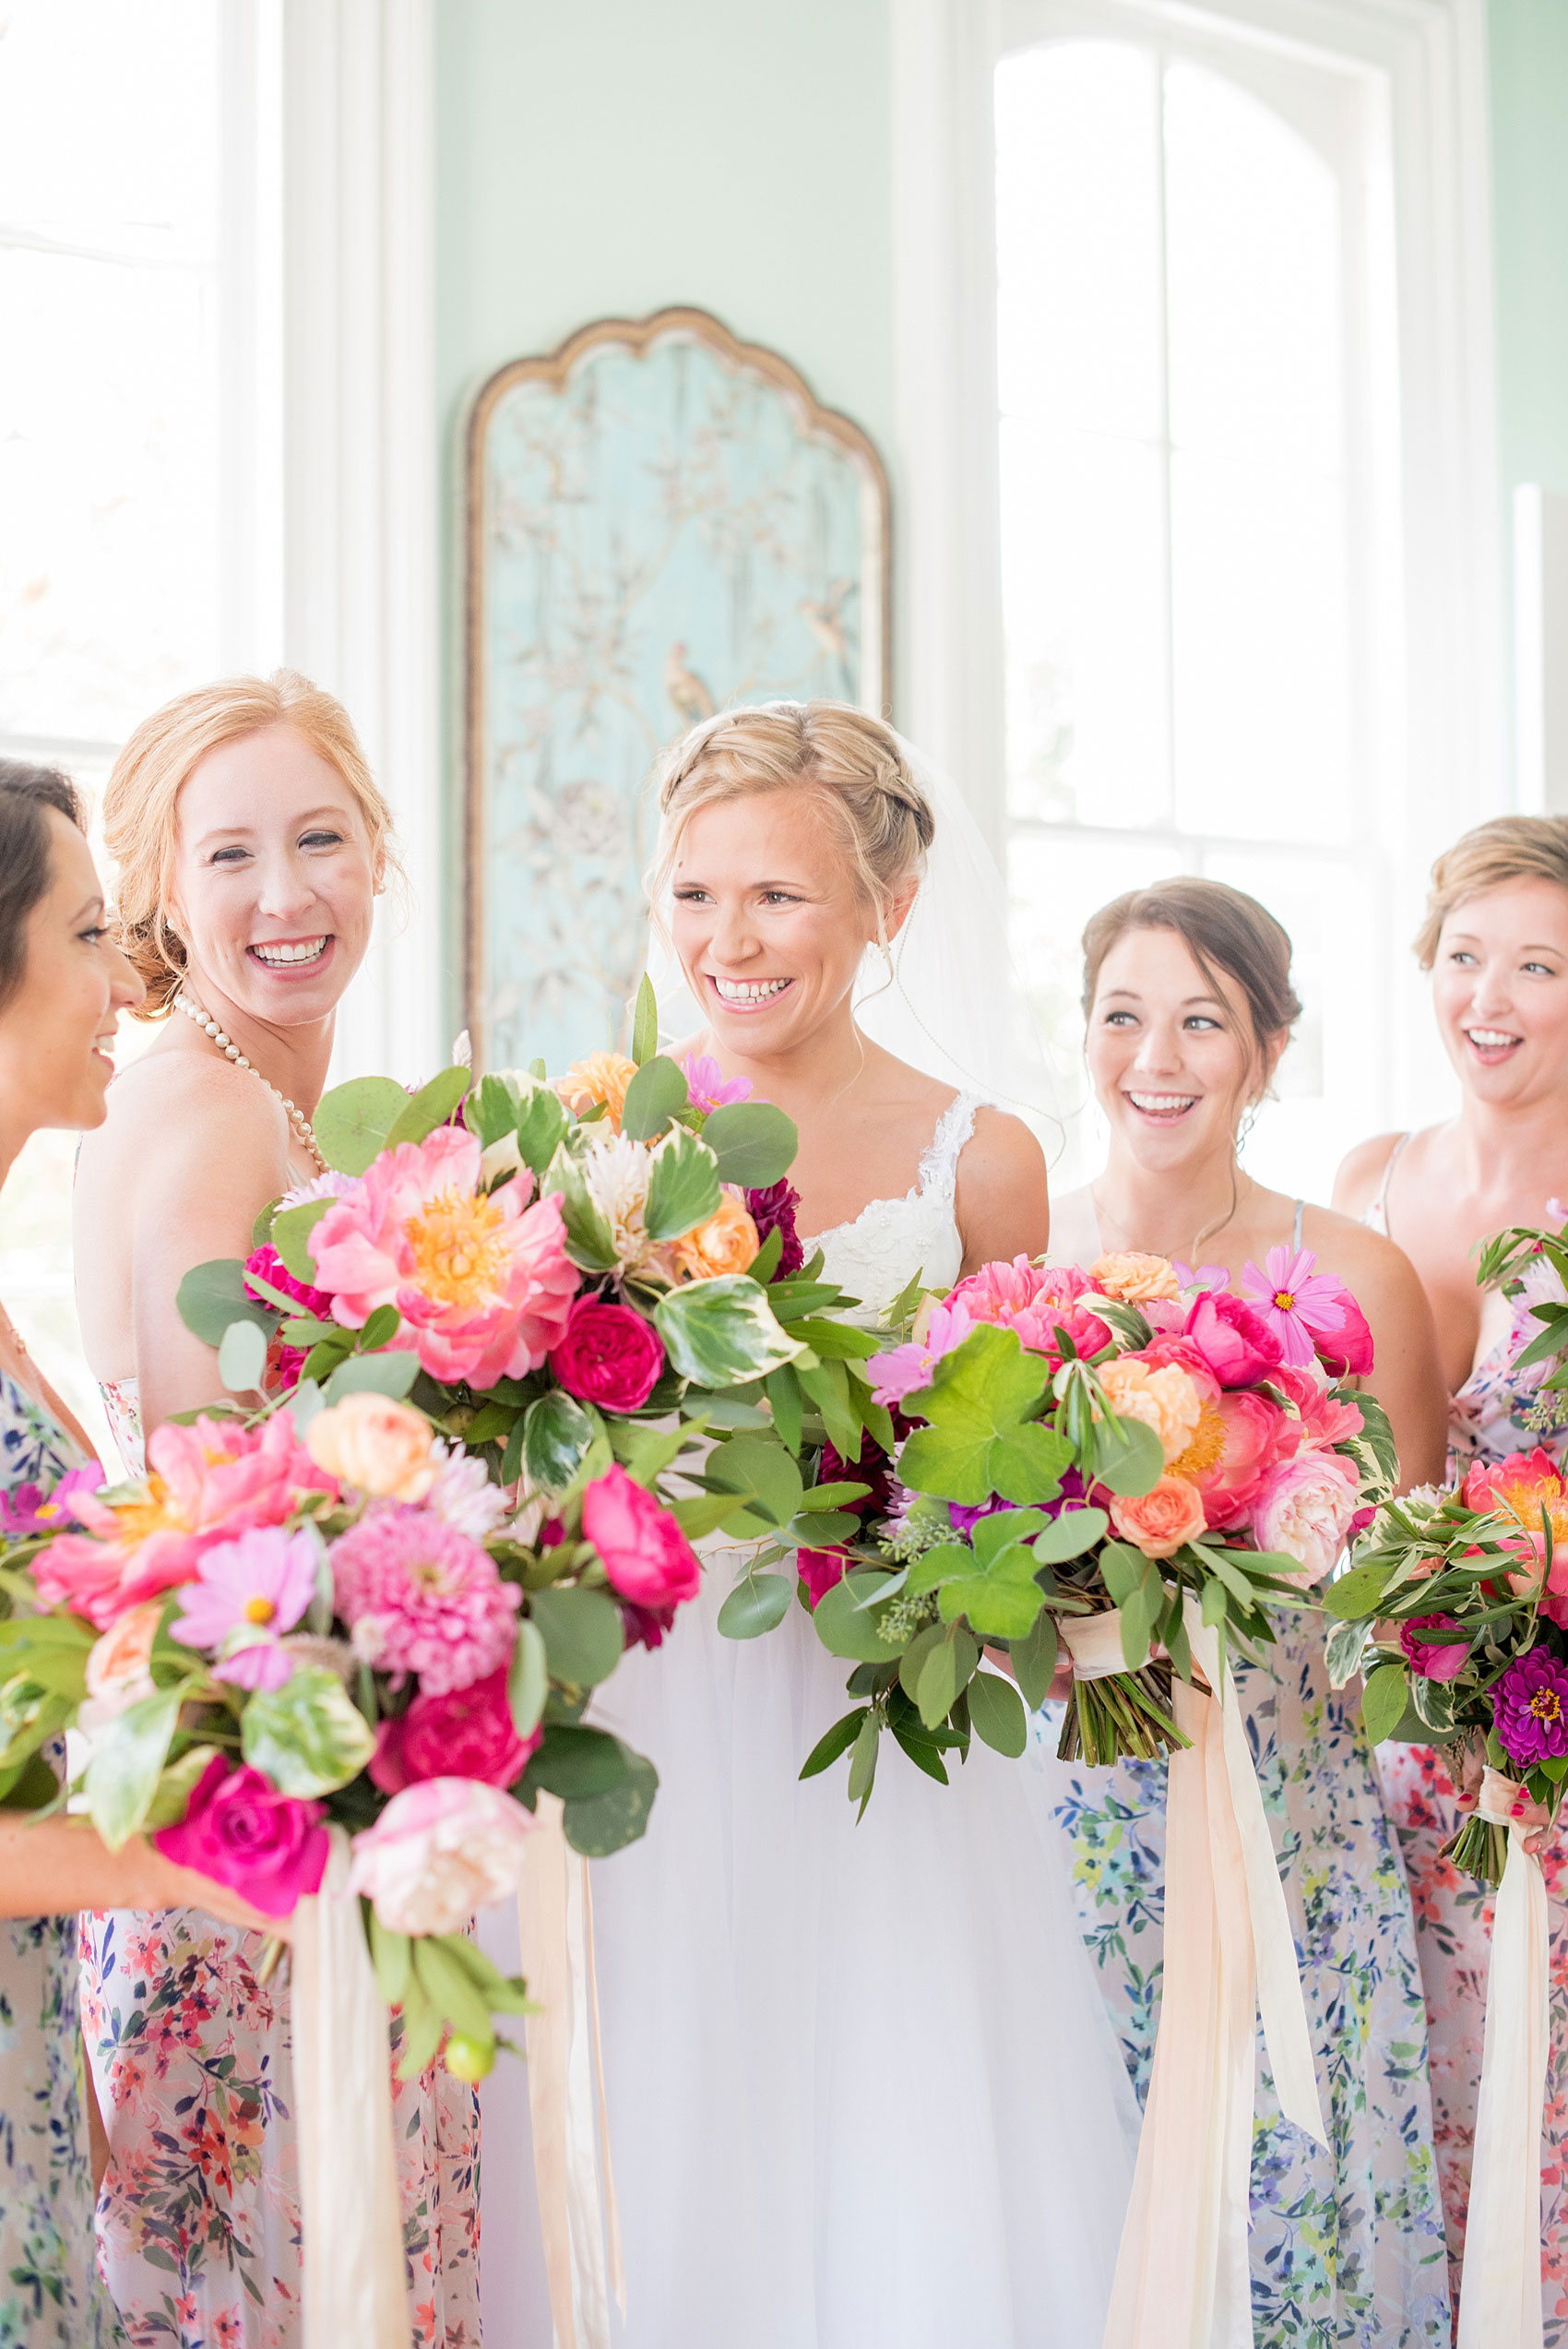 Mikkel Paige Photography wedding photos at The Merrimon-Wynne House in downtown Raleigh. Bridal party in floral maxi dresses in blue and pink and colorful garden rose and peony bouquets.